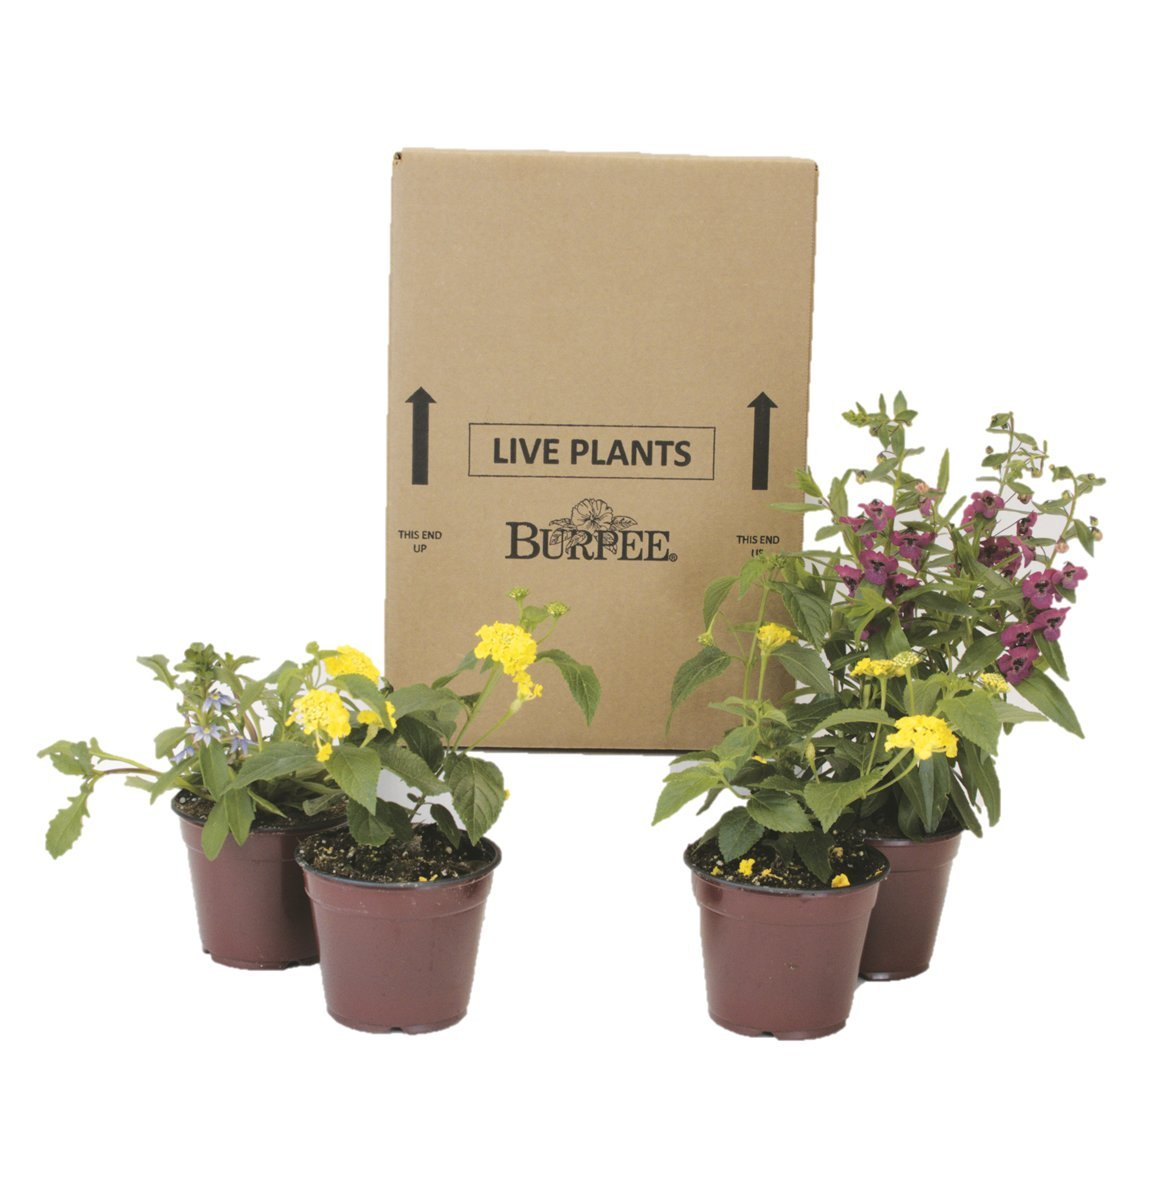 Burpee Combo 'Daydream' - Create Instant Colorful Container Gardens with Four 4 in. pots